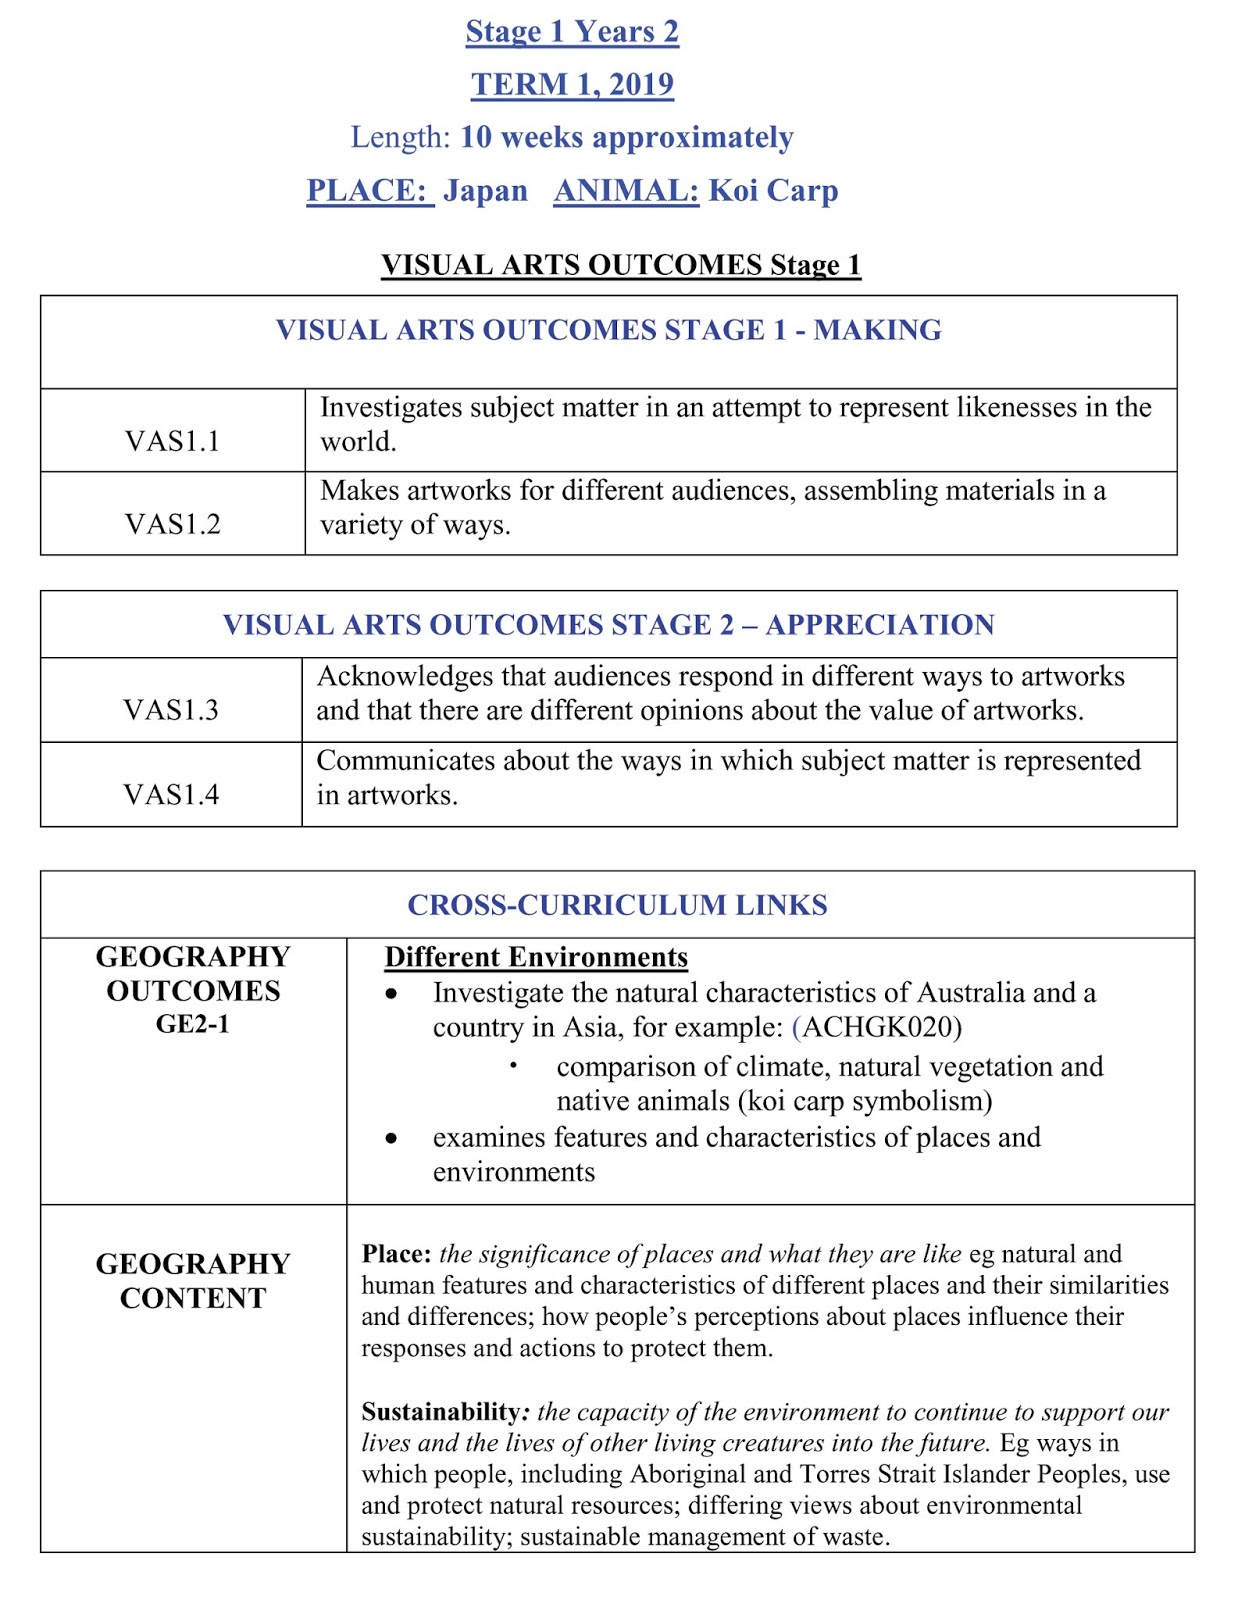 Stage 1 Year 2 Geography Content